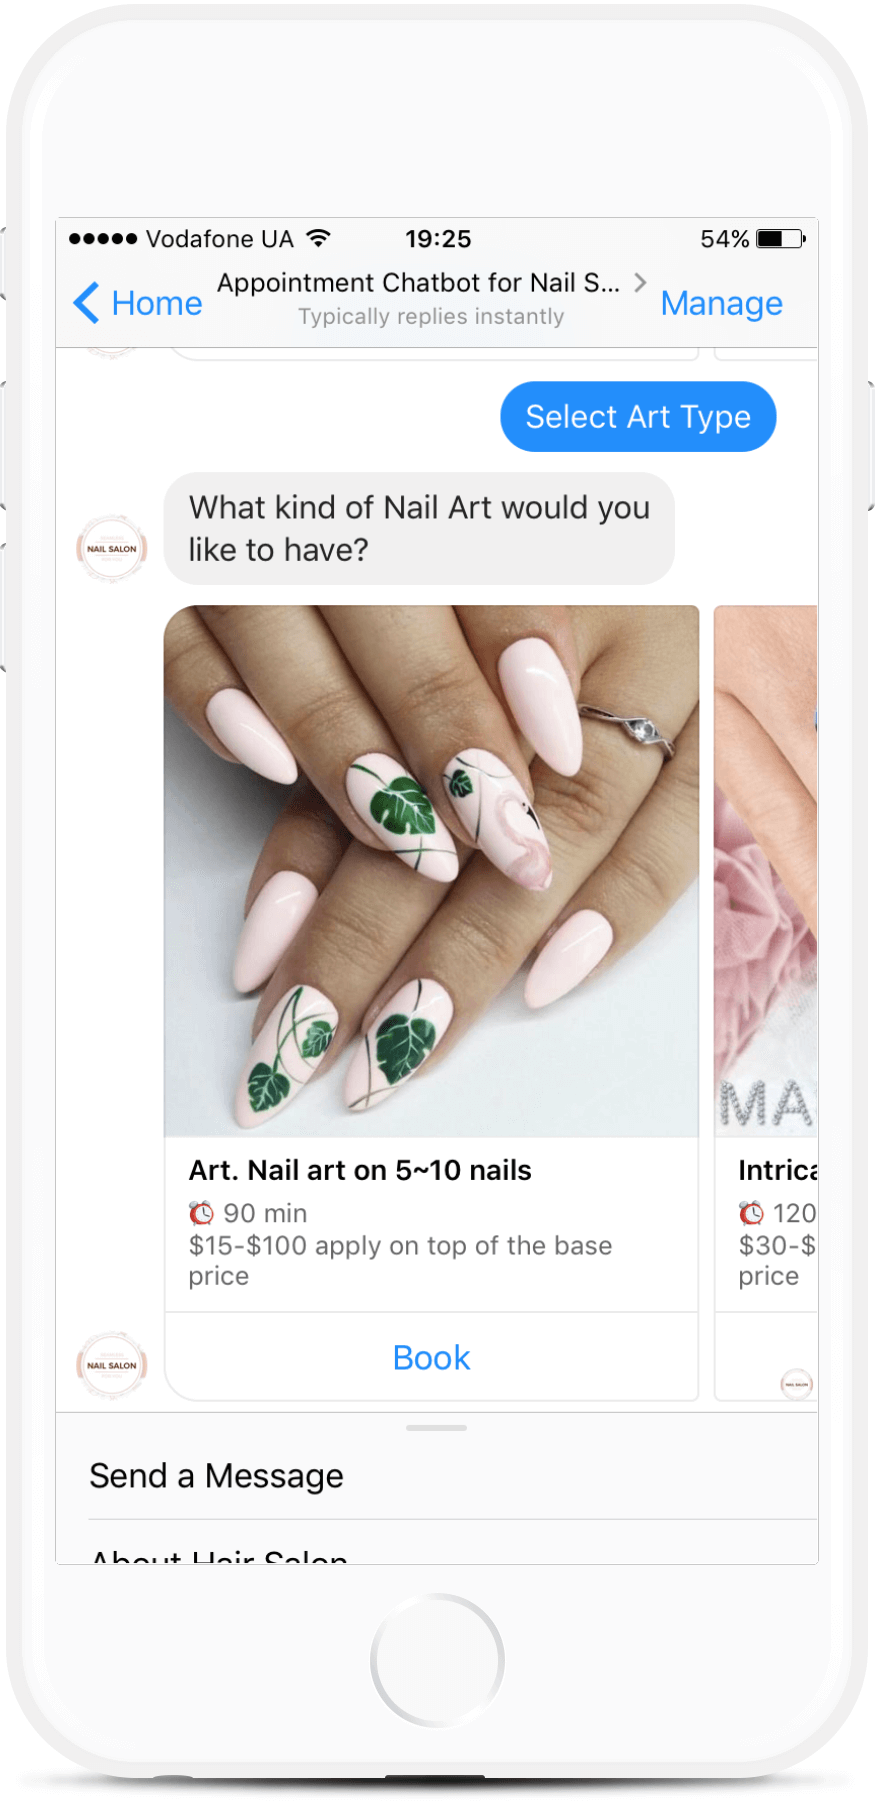 Facebook Messenger Appointment Chatbot for Nail Salons for $59